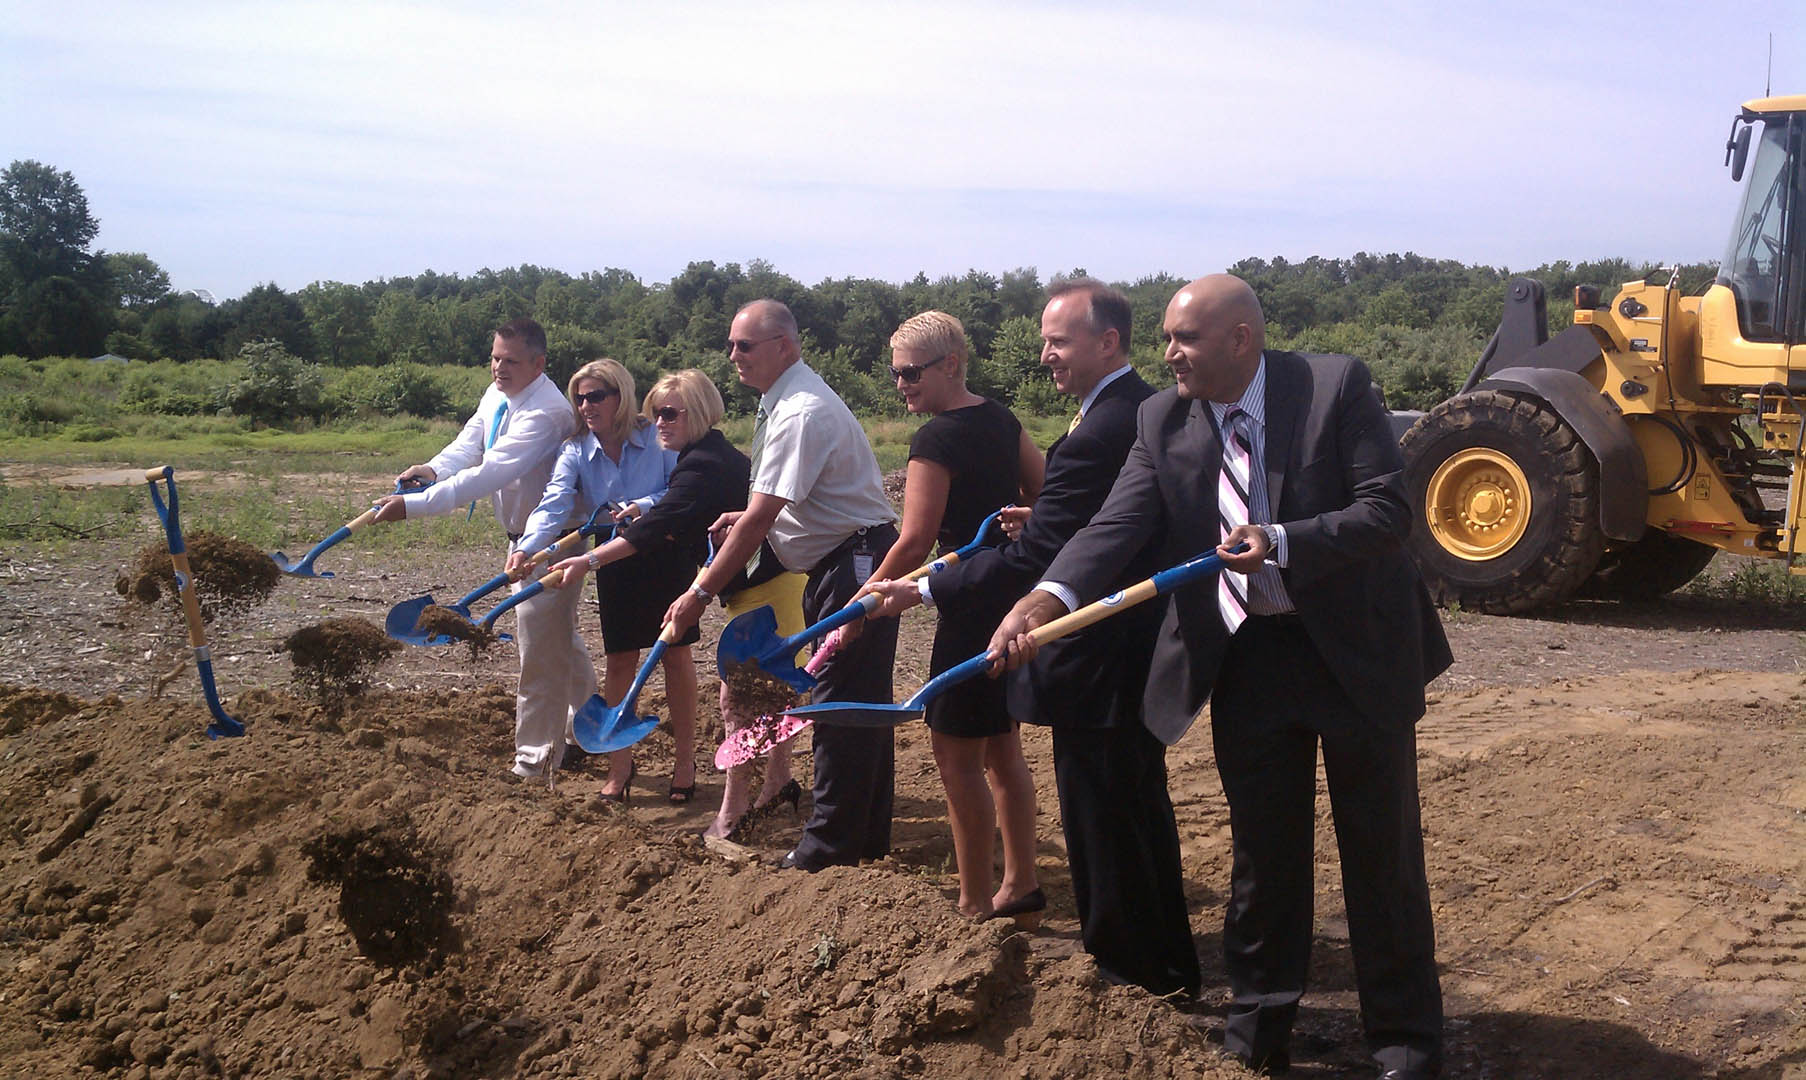 Delaware City DMV Groundbreaking